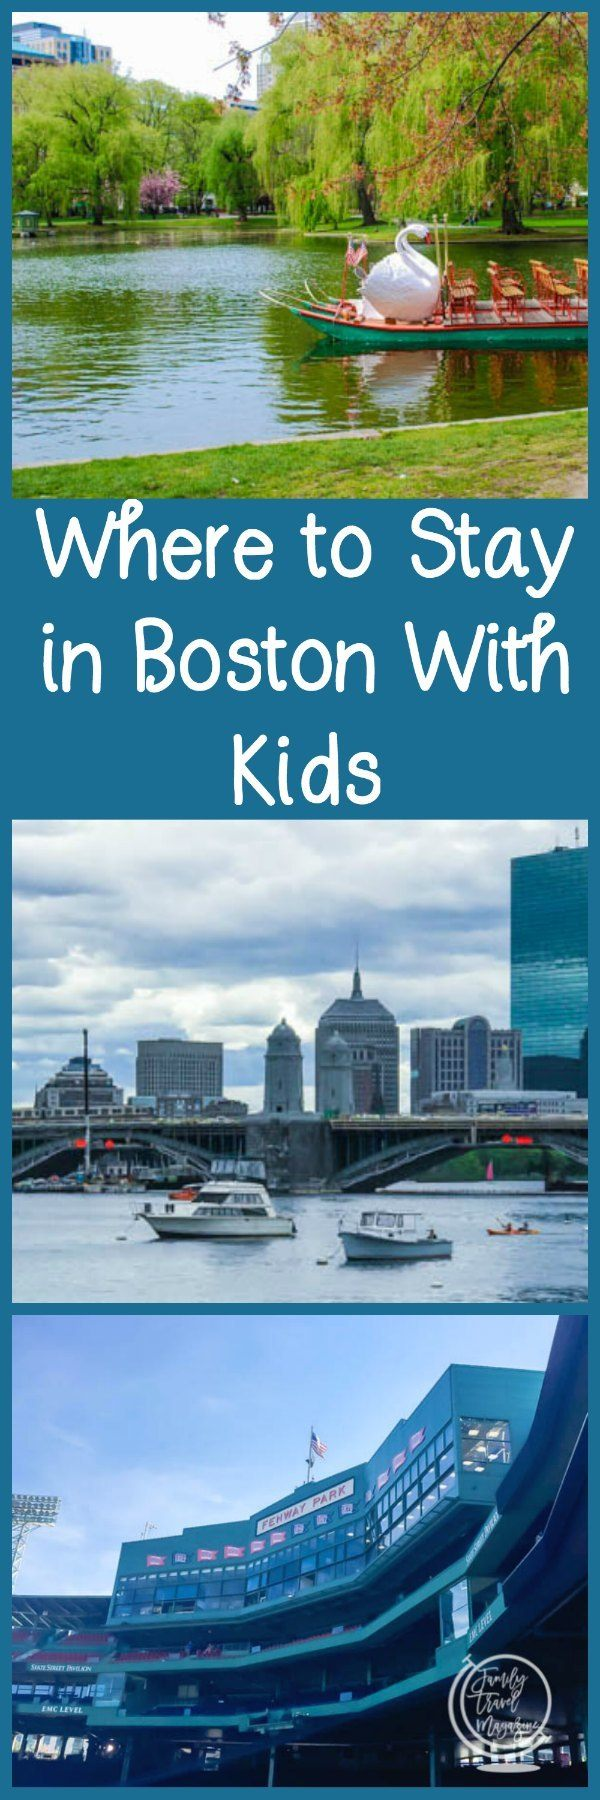 Where to stay in Boston with kids, including hotels near Faneuil Hall and Fenway Park, as well as hotels in the suburbs and Cape Cod.